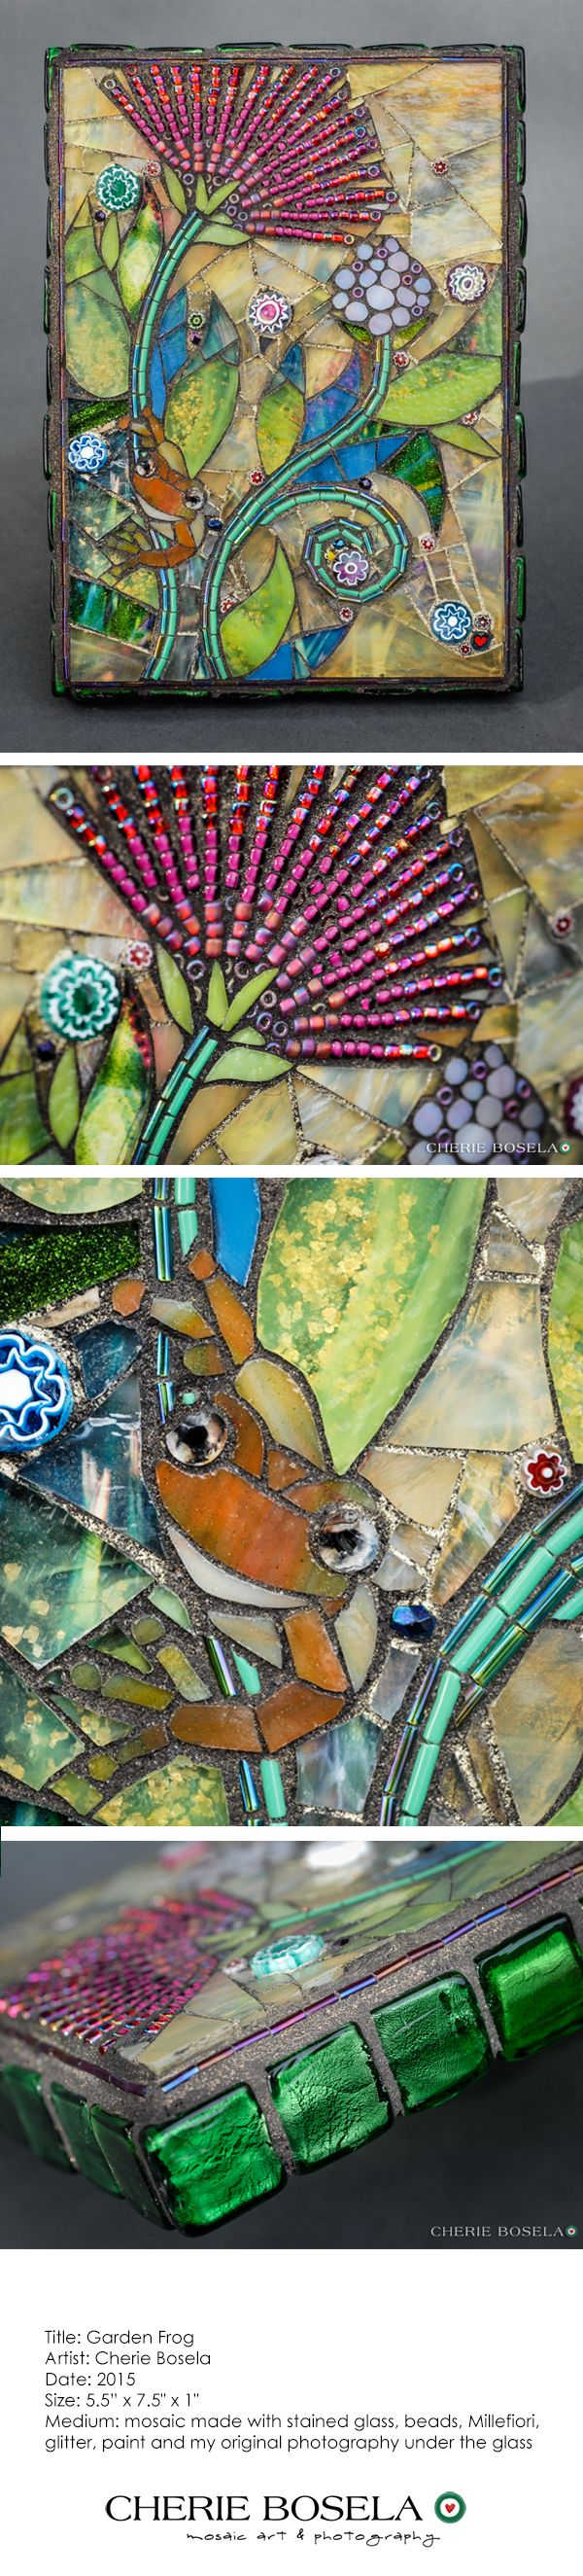 Mosaic art by Cherie Bosela                                                                                                                                                                                 More